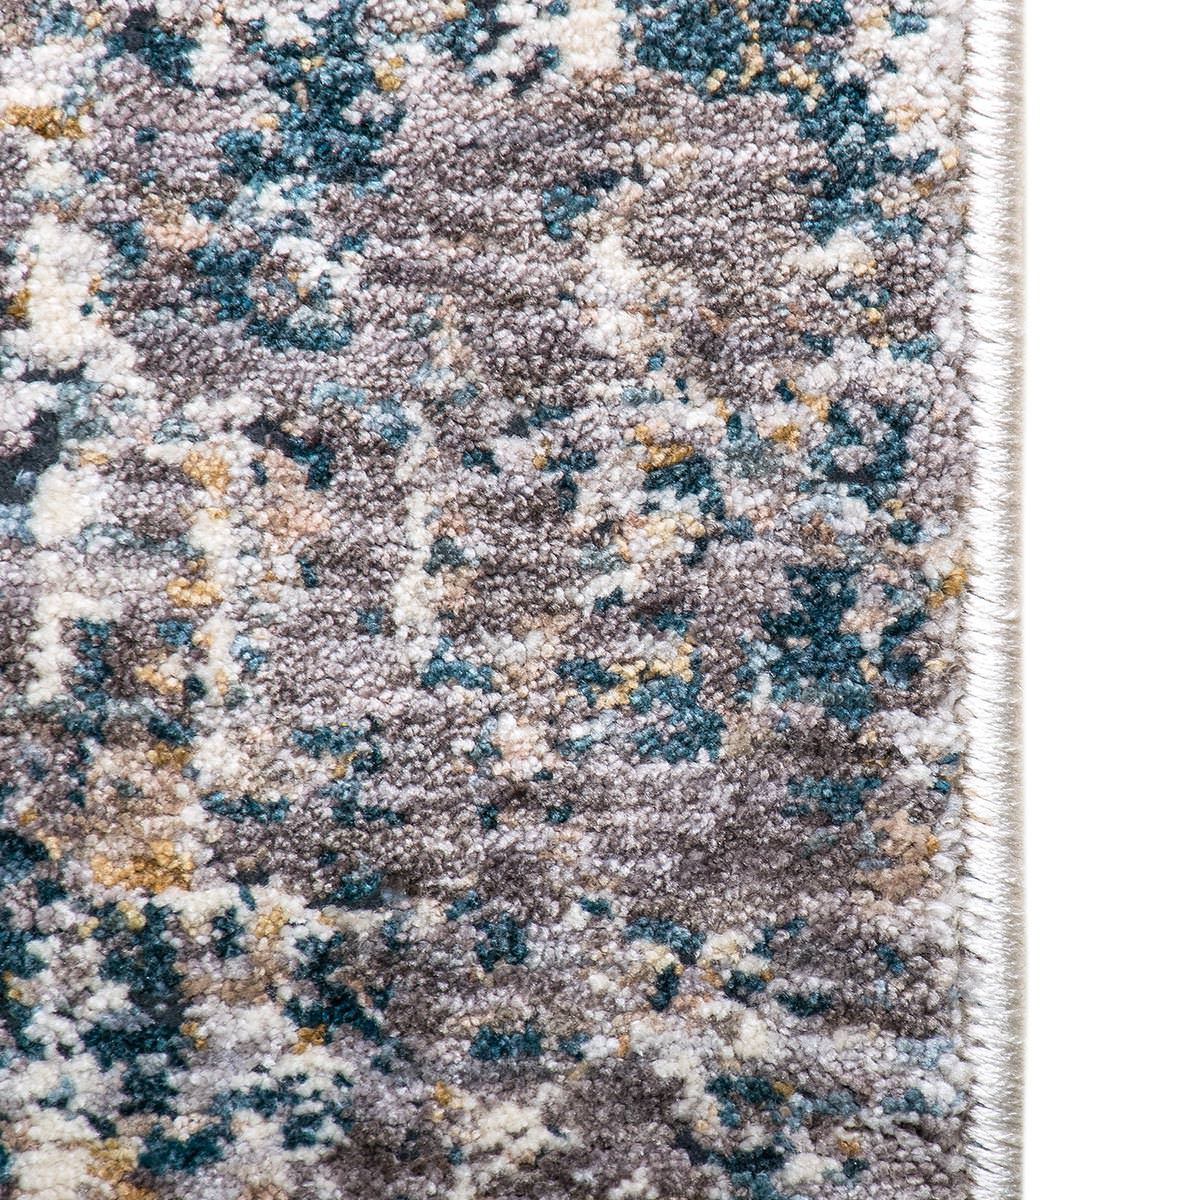 Miami Rug 02 Yellow/Blue/Grey 5